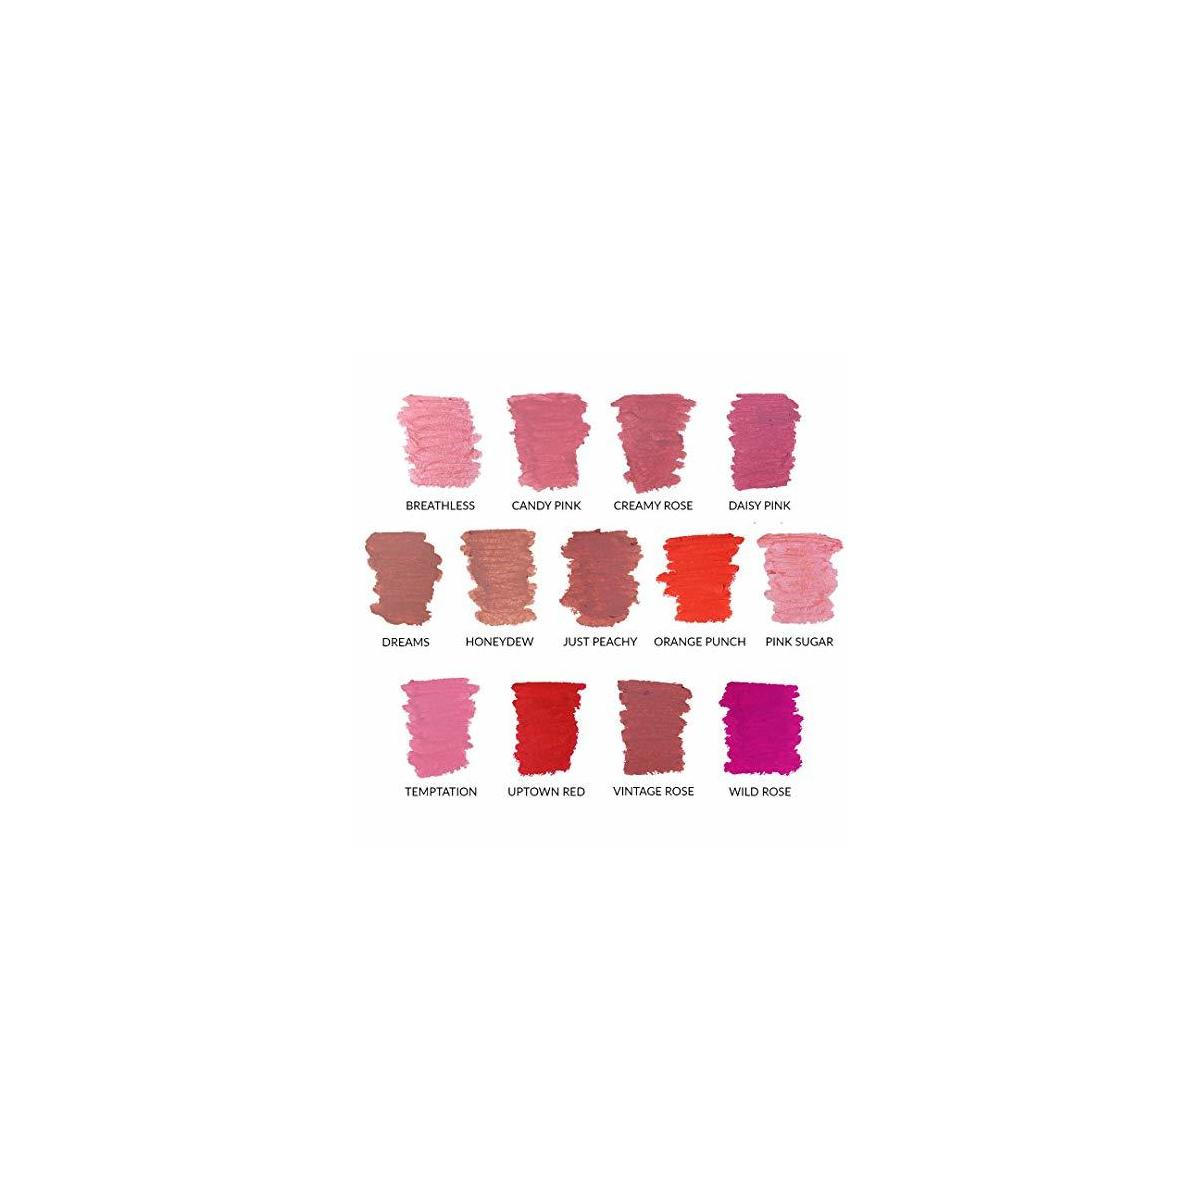 Super Moisture Lipstick by True + Luscious - Clean Formula, Smooth and Hydrating - Vegan and Cruelty Free Lipstick, Non Toxic and Lead Free Shade: Honeydew - 0.12 oz